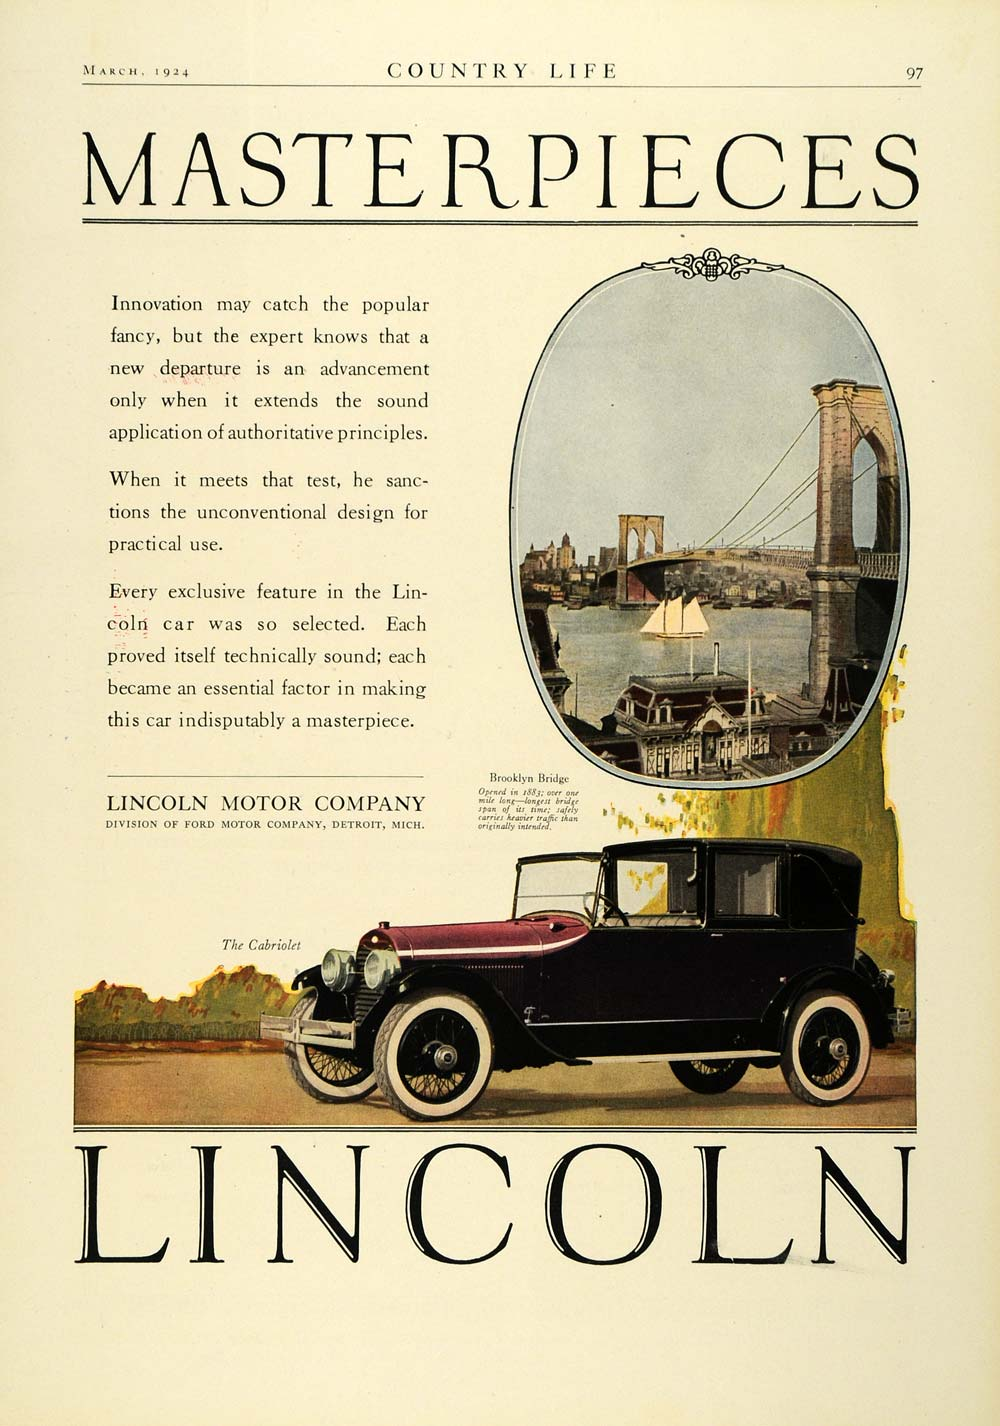 1924 Ad Antique Enclosed Lincoln Motor Car Cabriolet